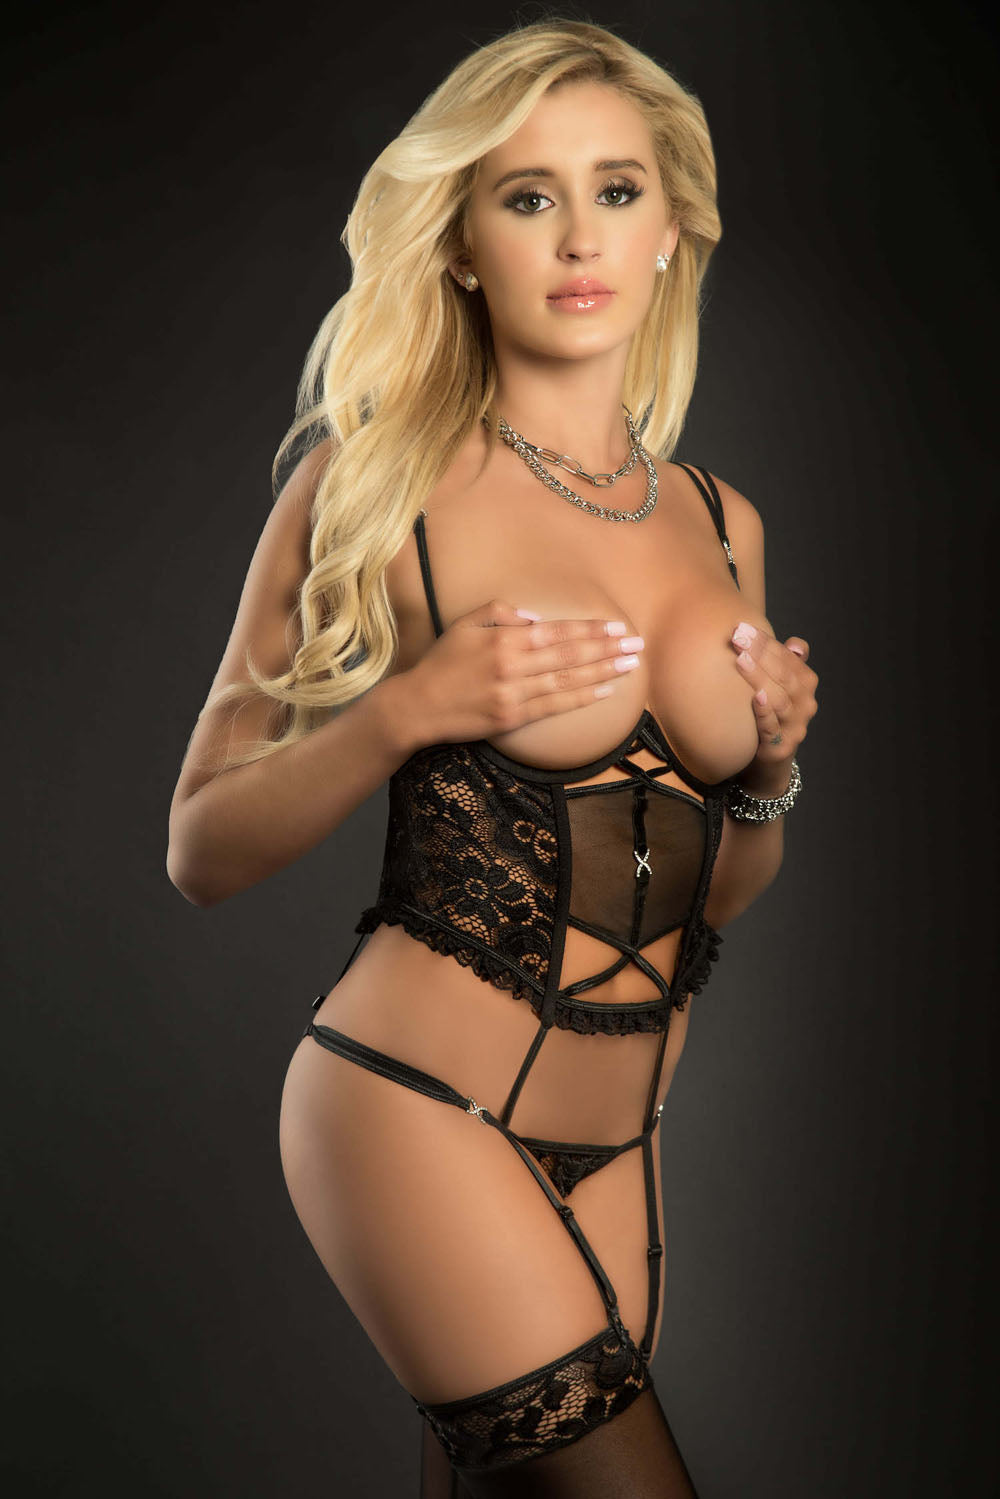 2pc Teddy Corset With Open Cups and Open Crotch - One Size - Black - G-World -  Los Angeles Lingerie